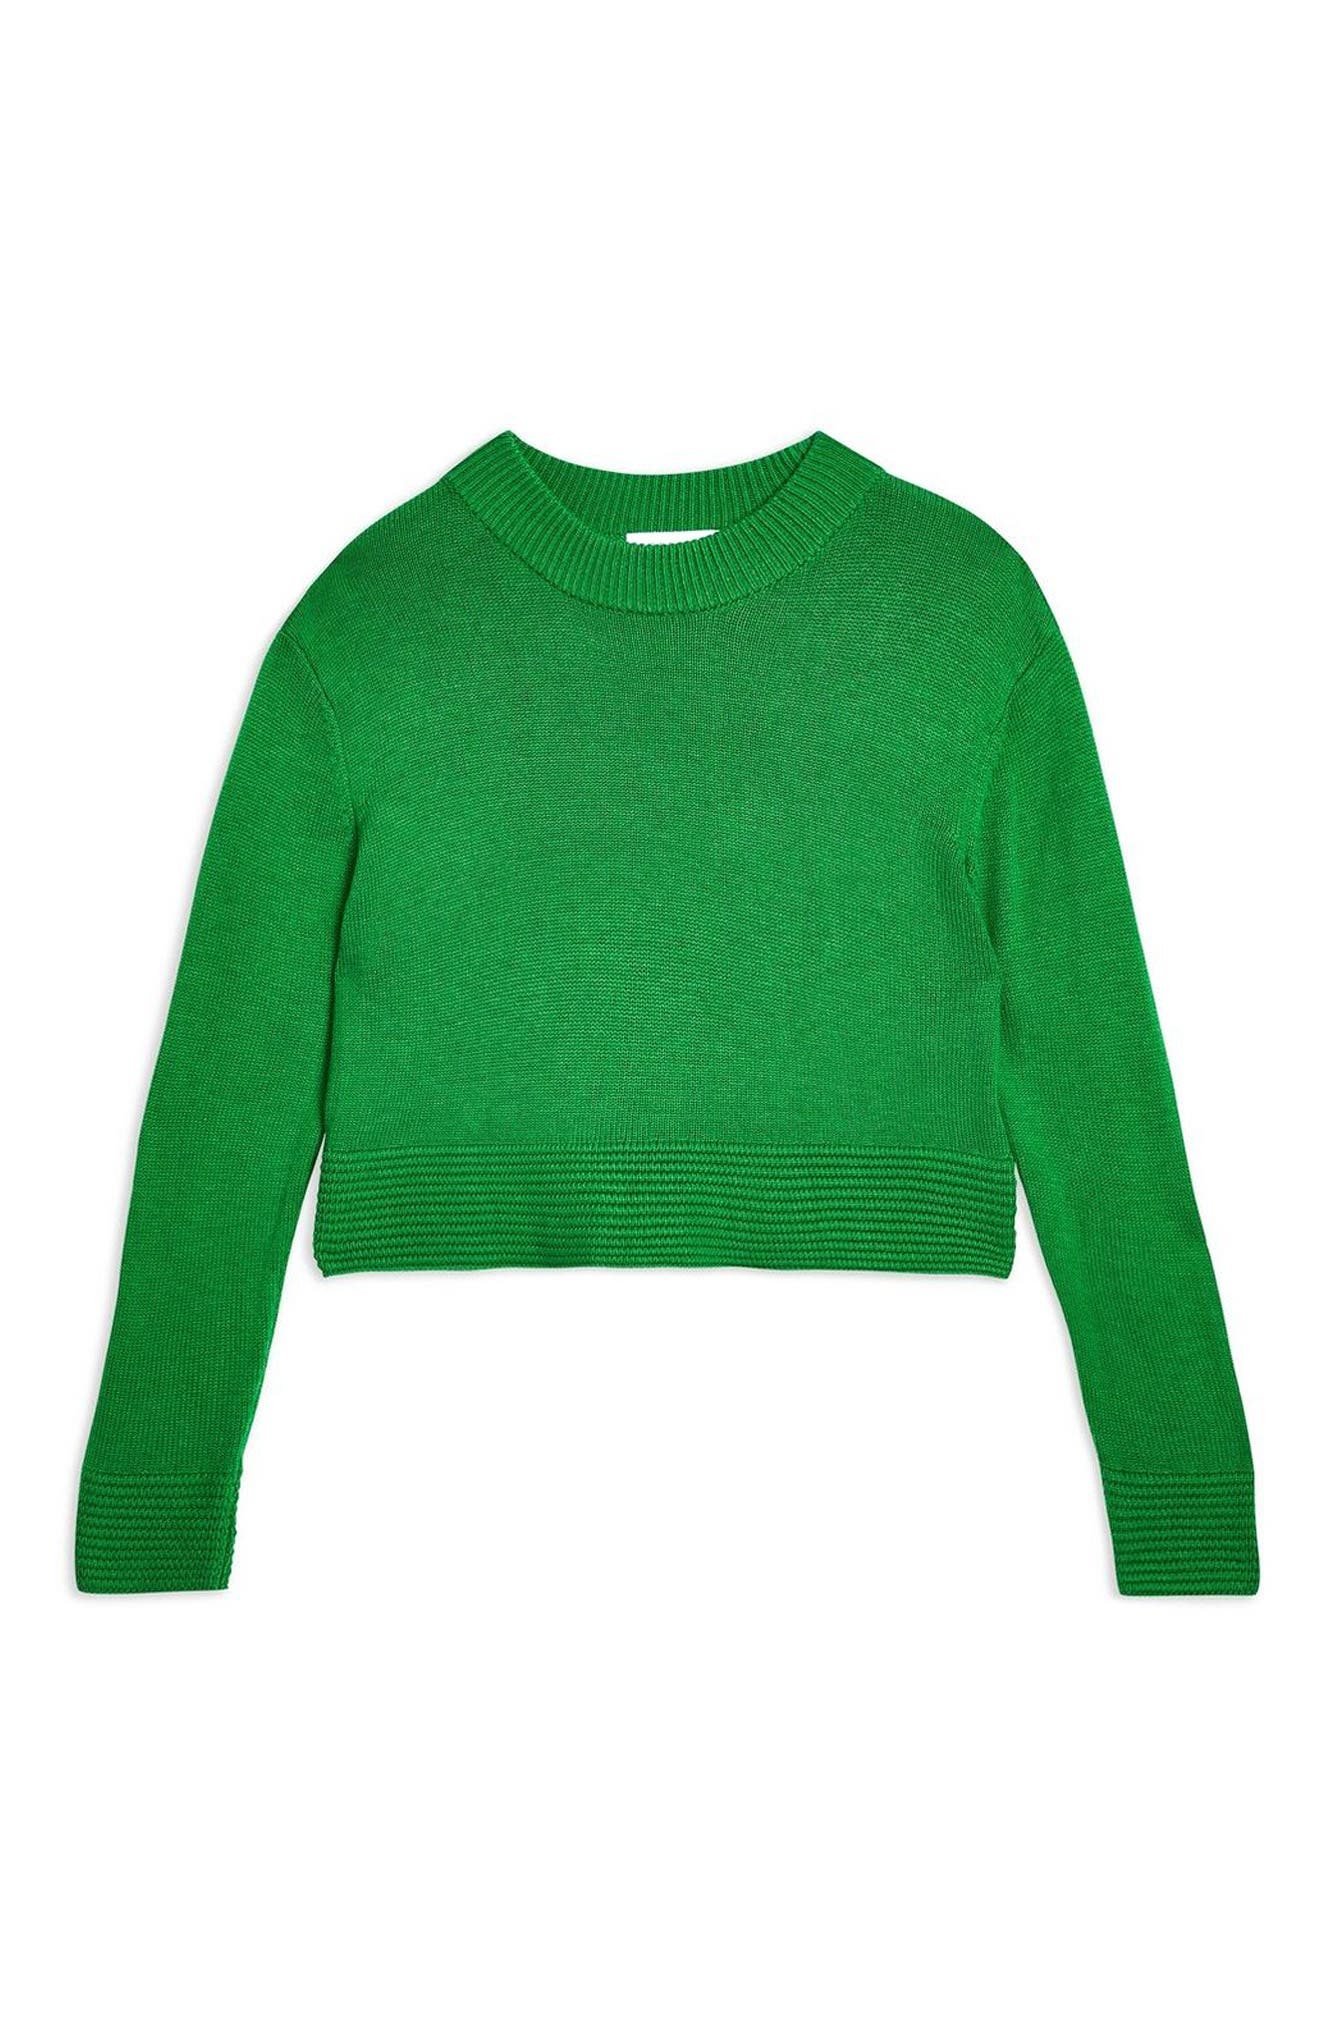 Cash Ottoman Crop Sweater,                             Alternate thumbnail 4, color,                             GREEN